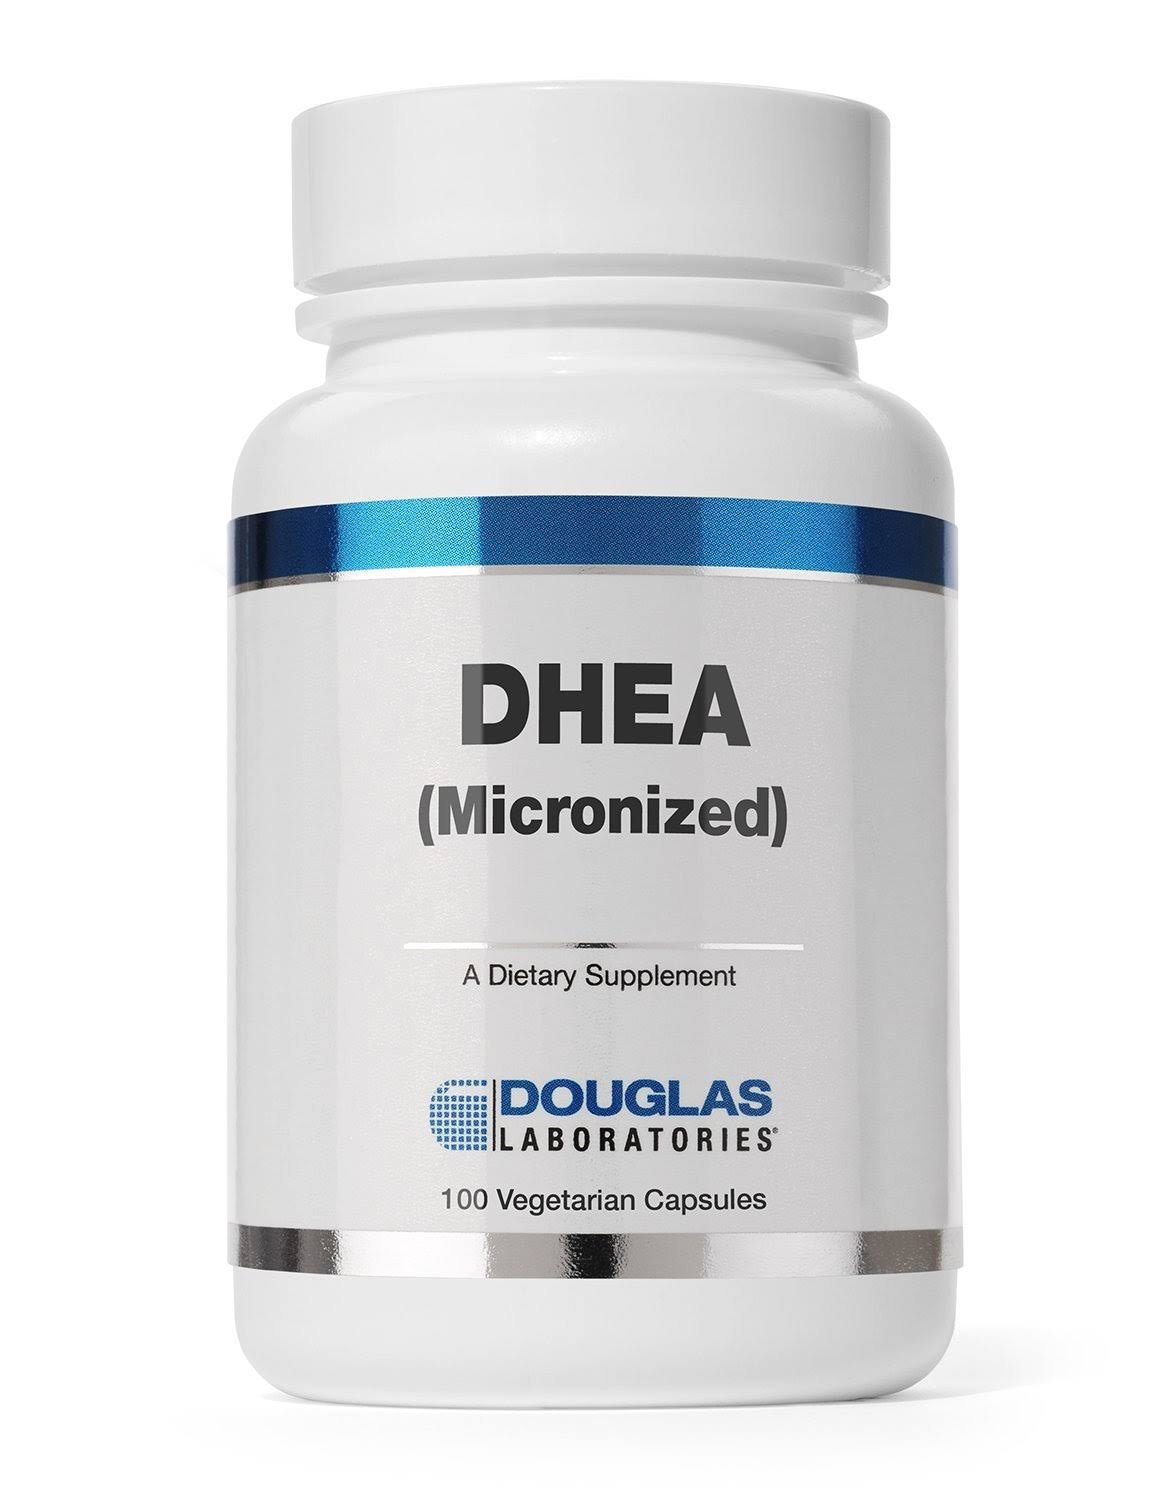 Douglas Laboratories DHEA Supplement - 50mg, 100ct